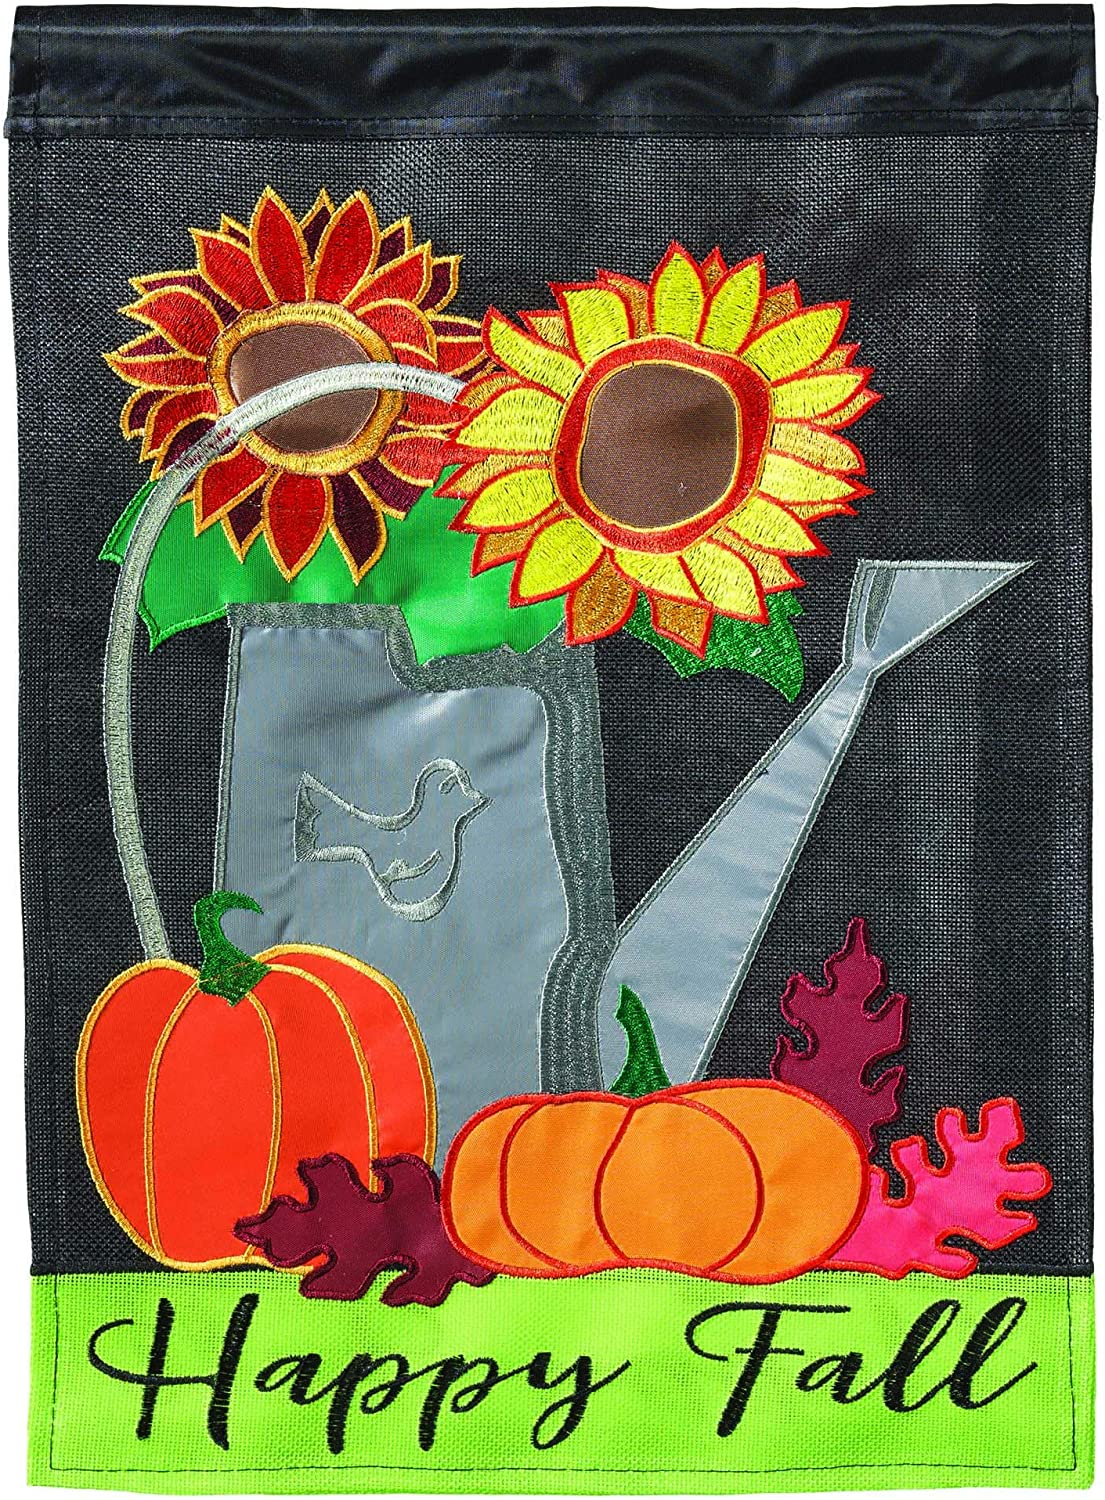 Magnolia Garden Fall Watering Can Brisk Fall 13 x 18 Small Double Applique Outdoor Harvest House Flag